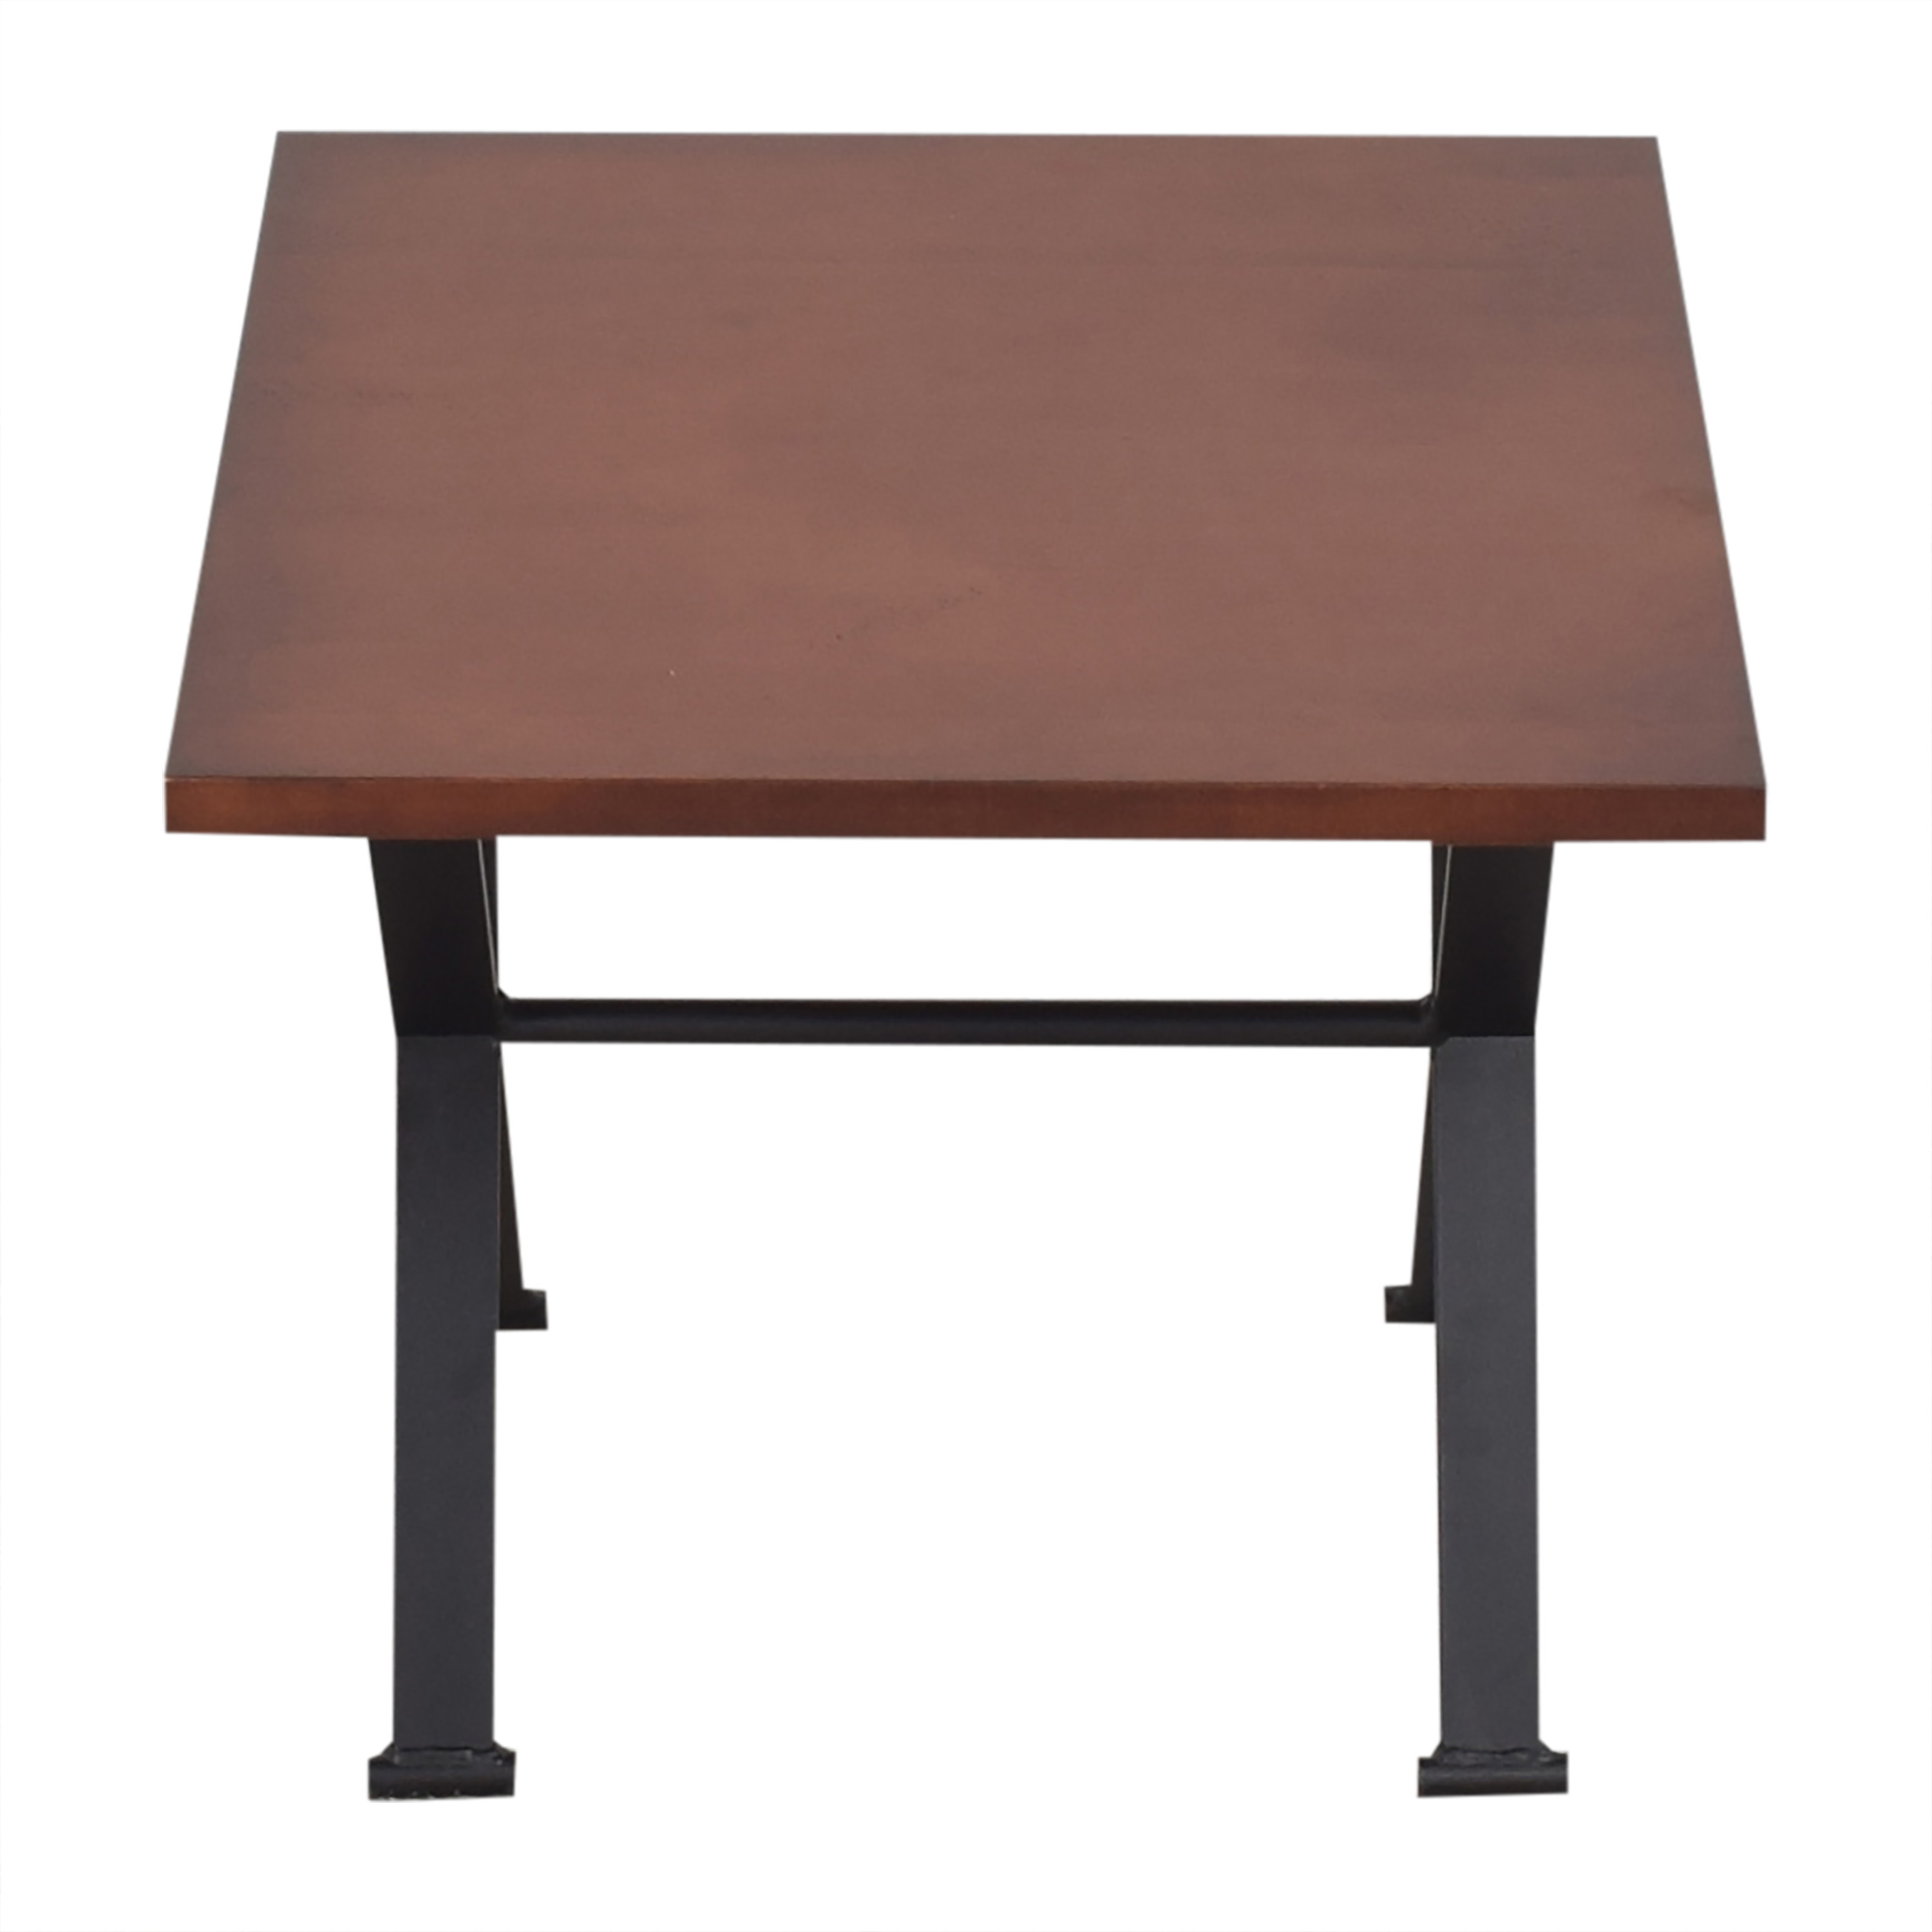 Charleston Forge Charleston Forge Square End Table Tables